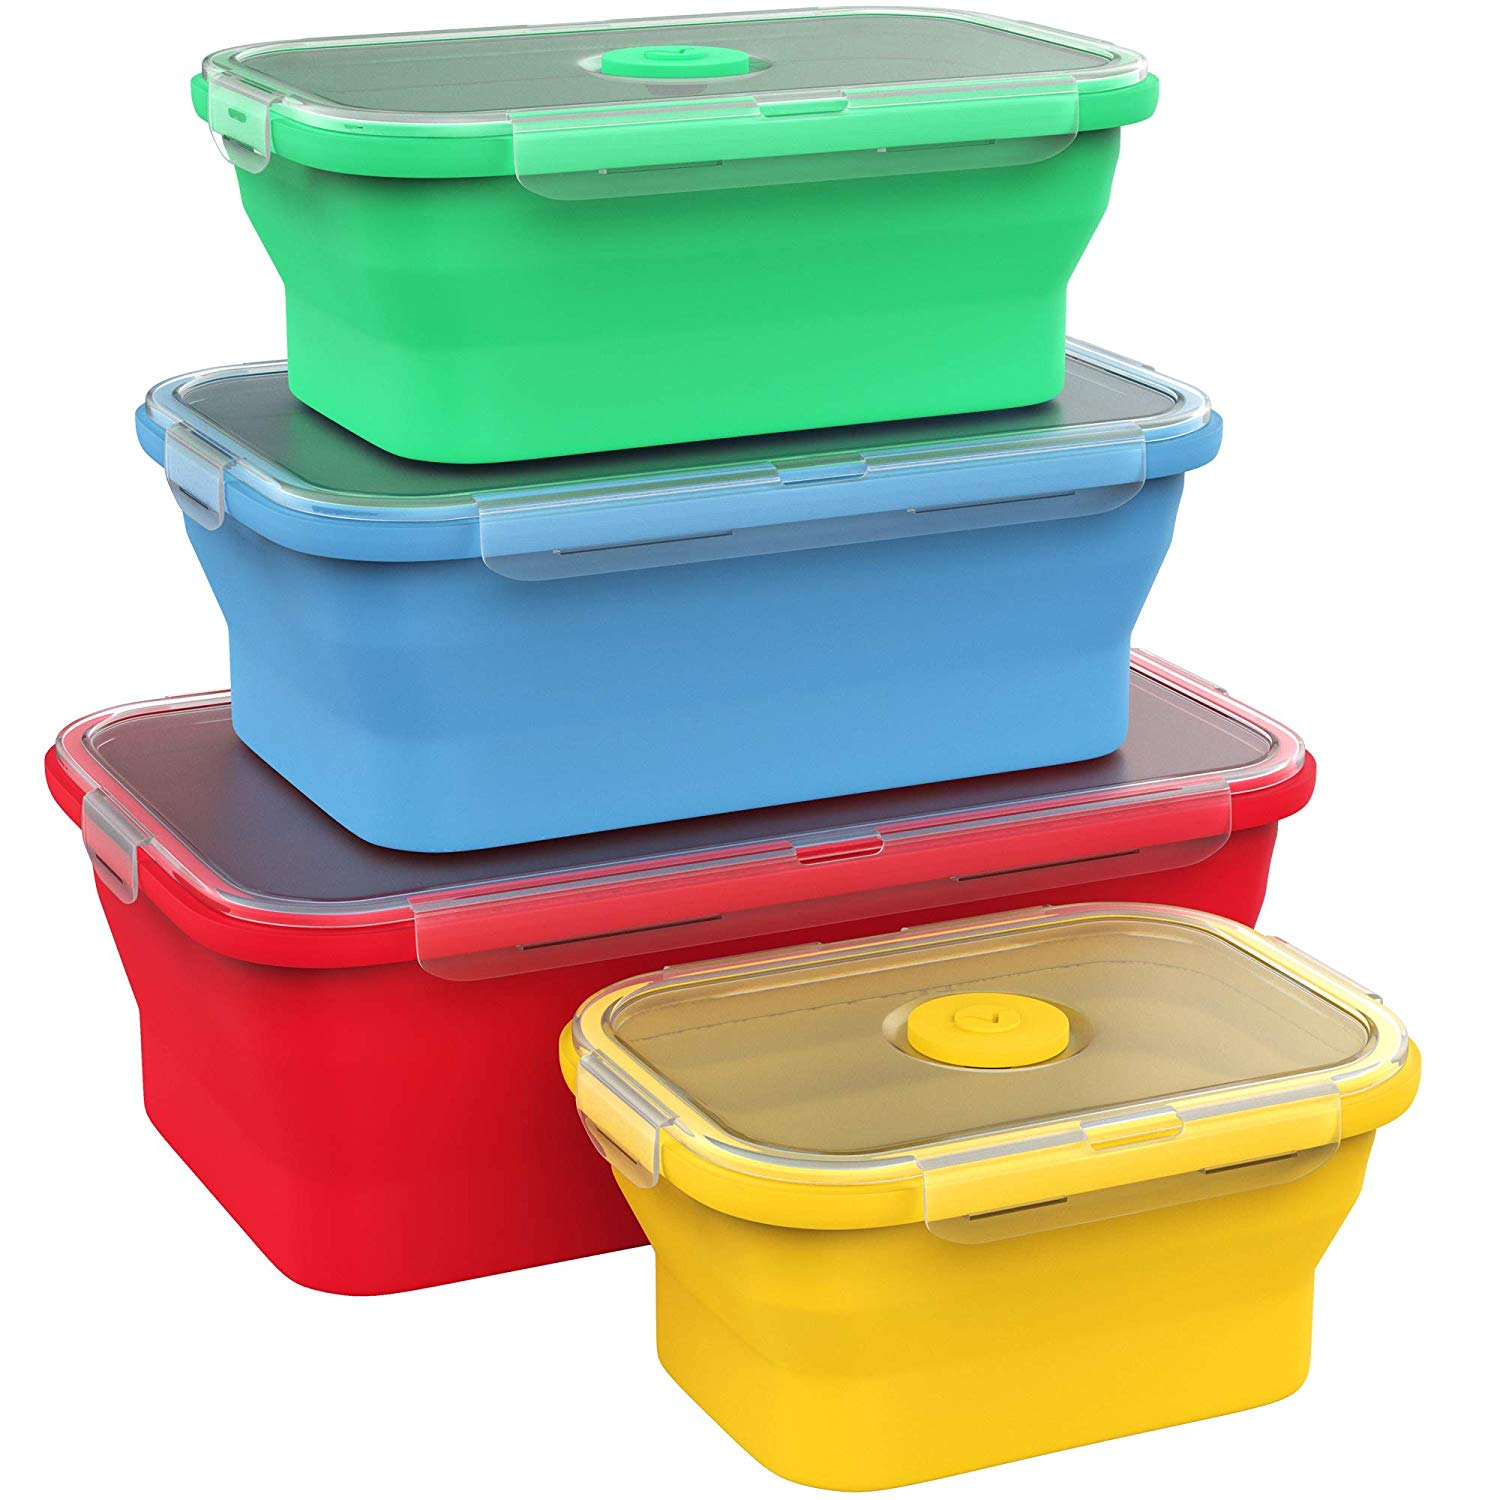 Vremi silicone collapsible containers